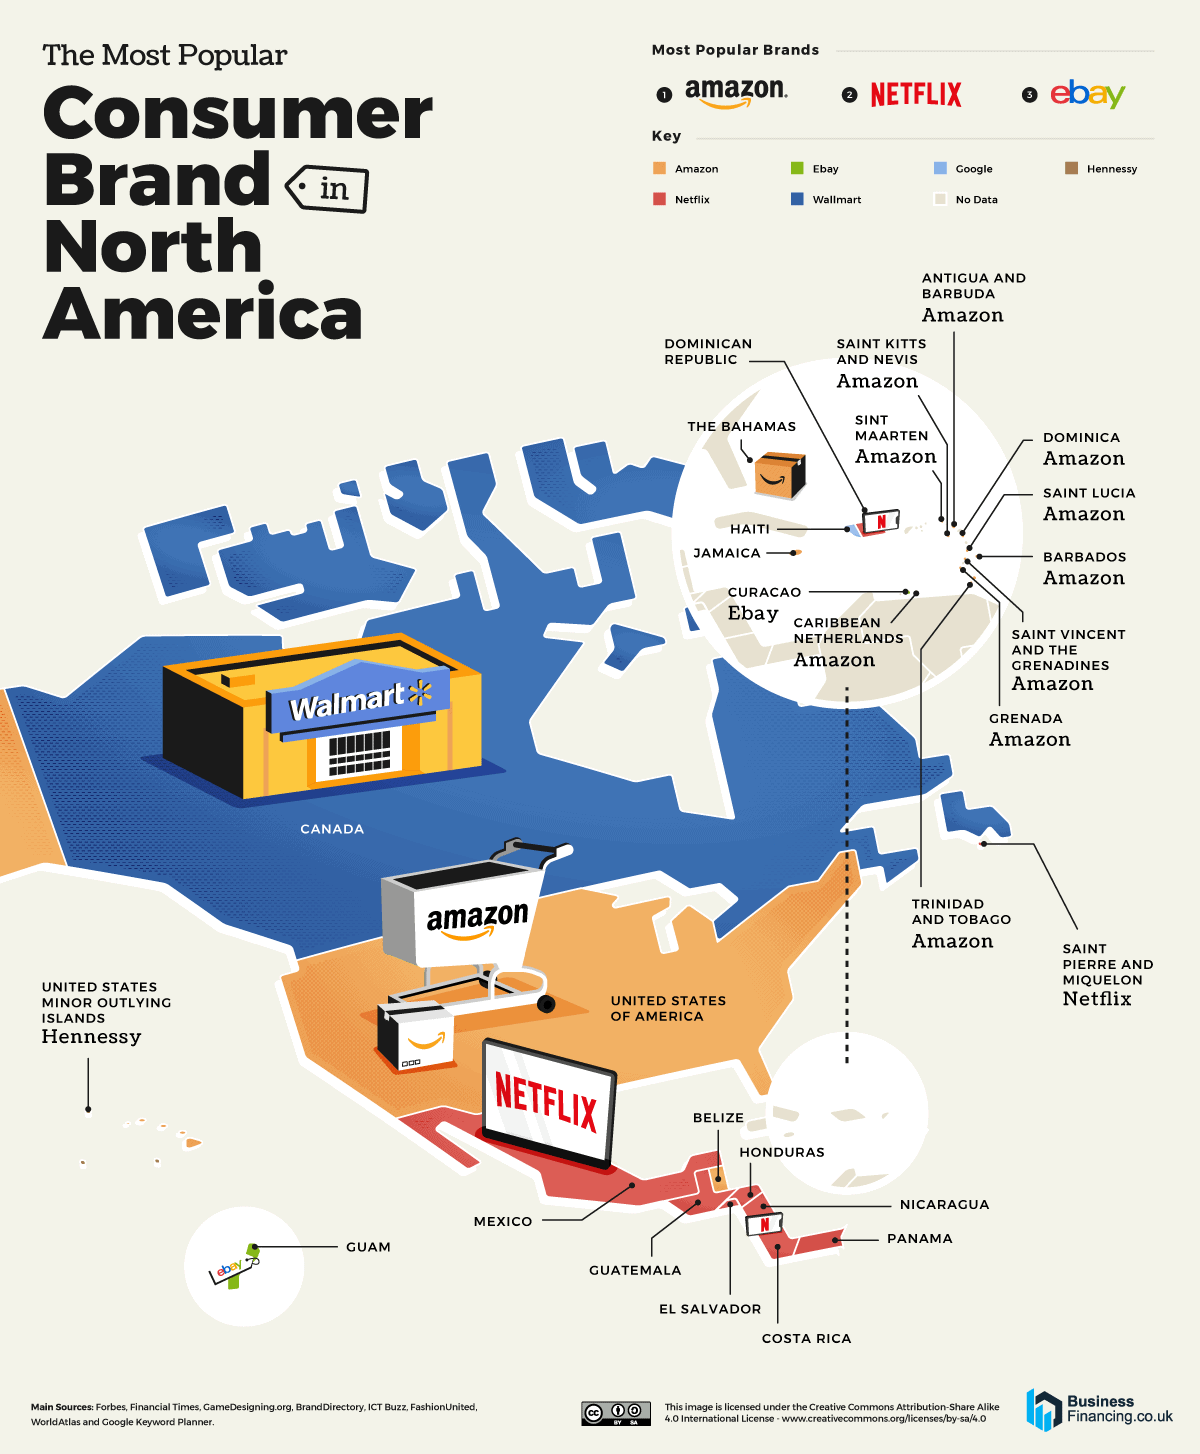 The Most Popular Consumer Brand in Every Country